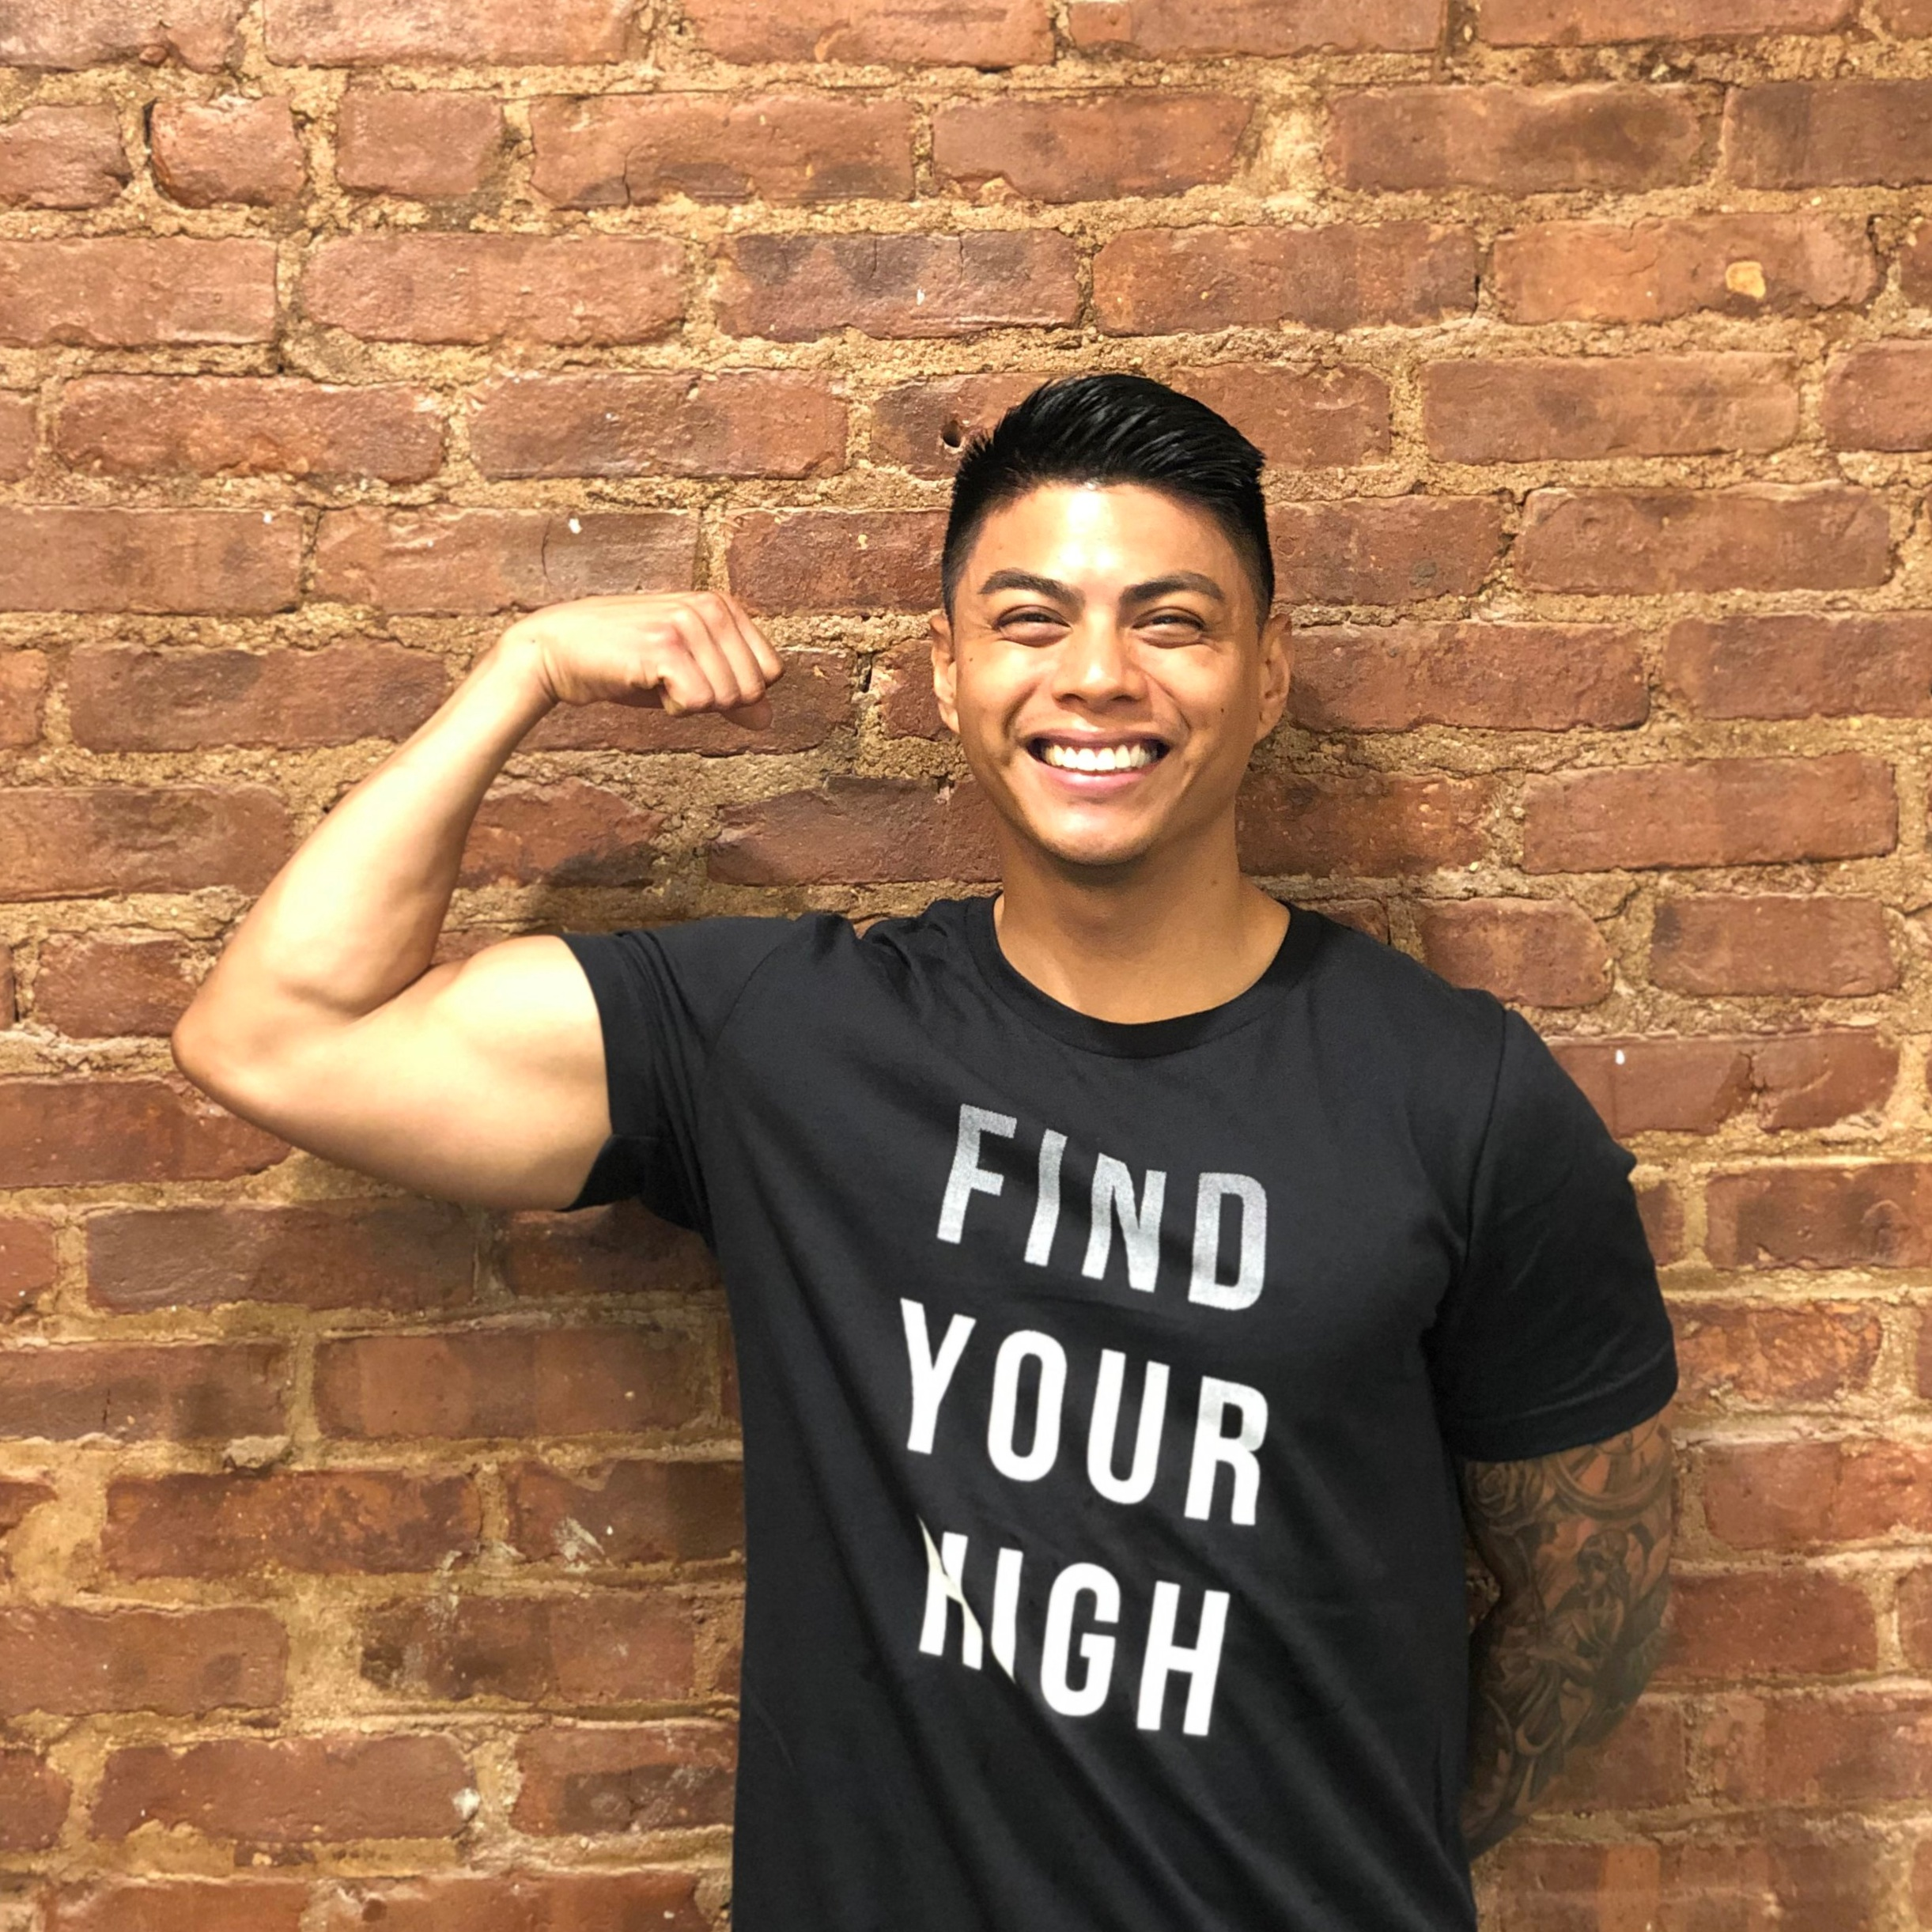 Manny Enriquez - @mvnny.eManny Enriquez hails from Hawaii and is so excited to be on the HIIT IT! team! Manny has always had a passion for movement and wellness. Manny is a certified personal trainer and group fitness instructor with a background in exercise science. He believes in mindset, movement and motivation. With his megawatt smile, Manny will help bring out your strongest and sweatiest self!